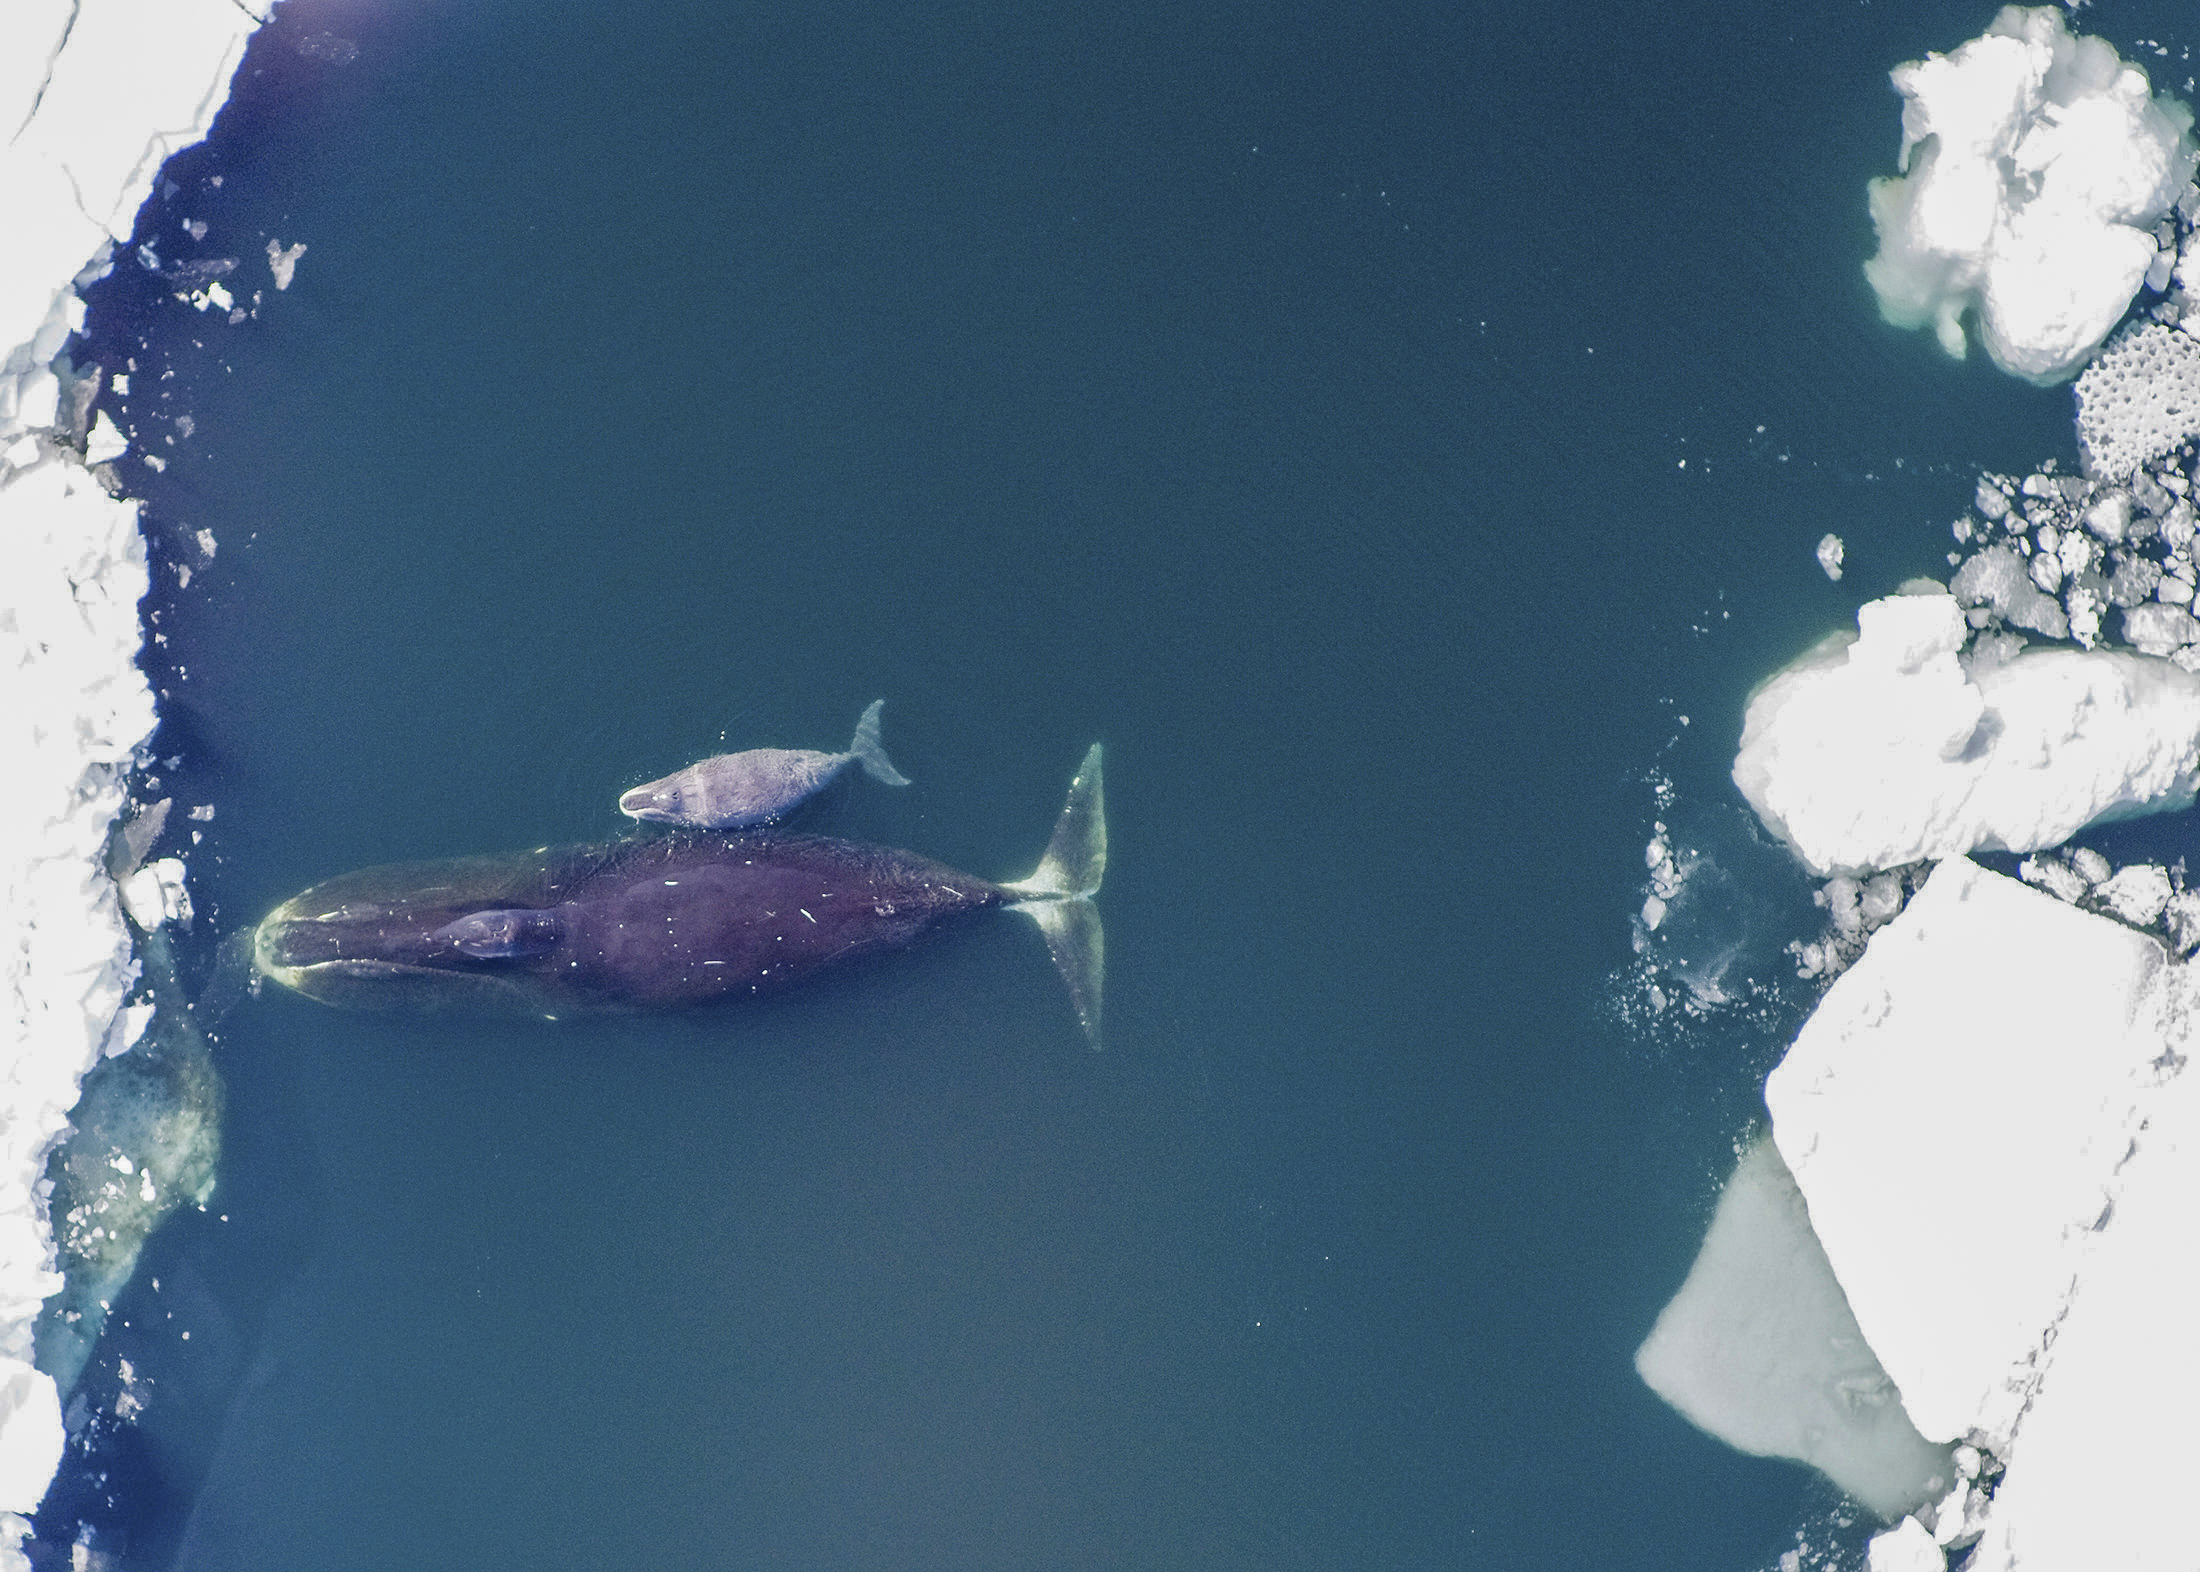 Bowhead whales like these, photographed in the Arctic Ocean, are just one of the fascinating topics related to the Anthropocene presented by historians at AHA20.